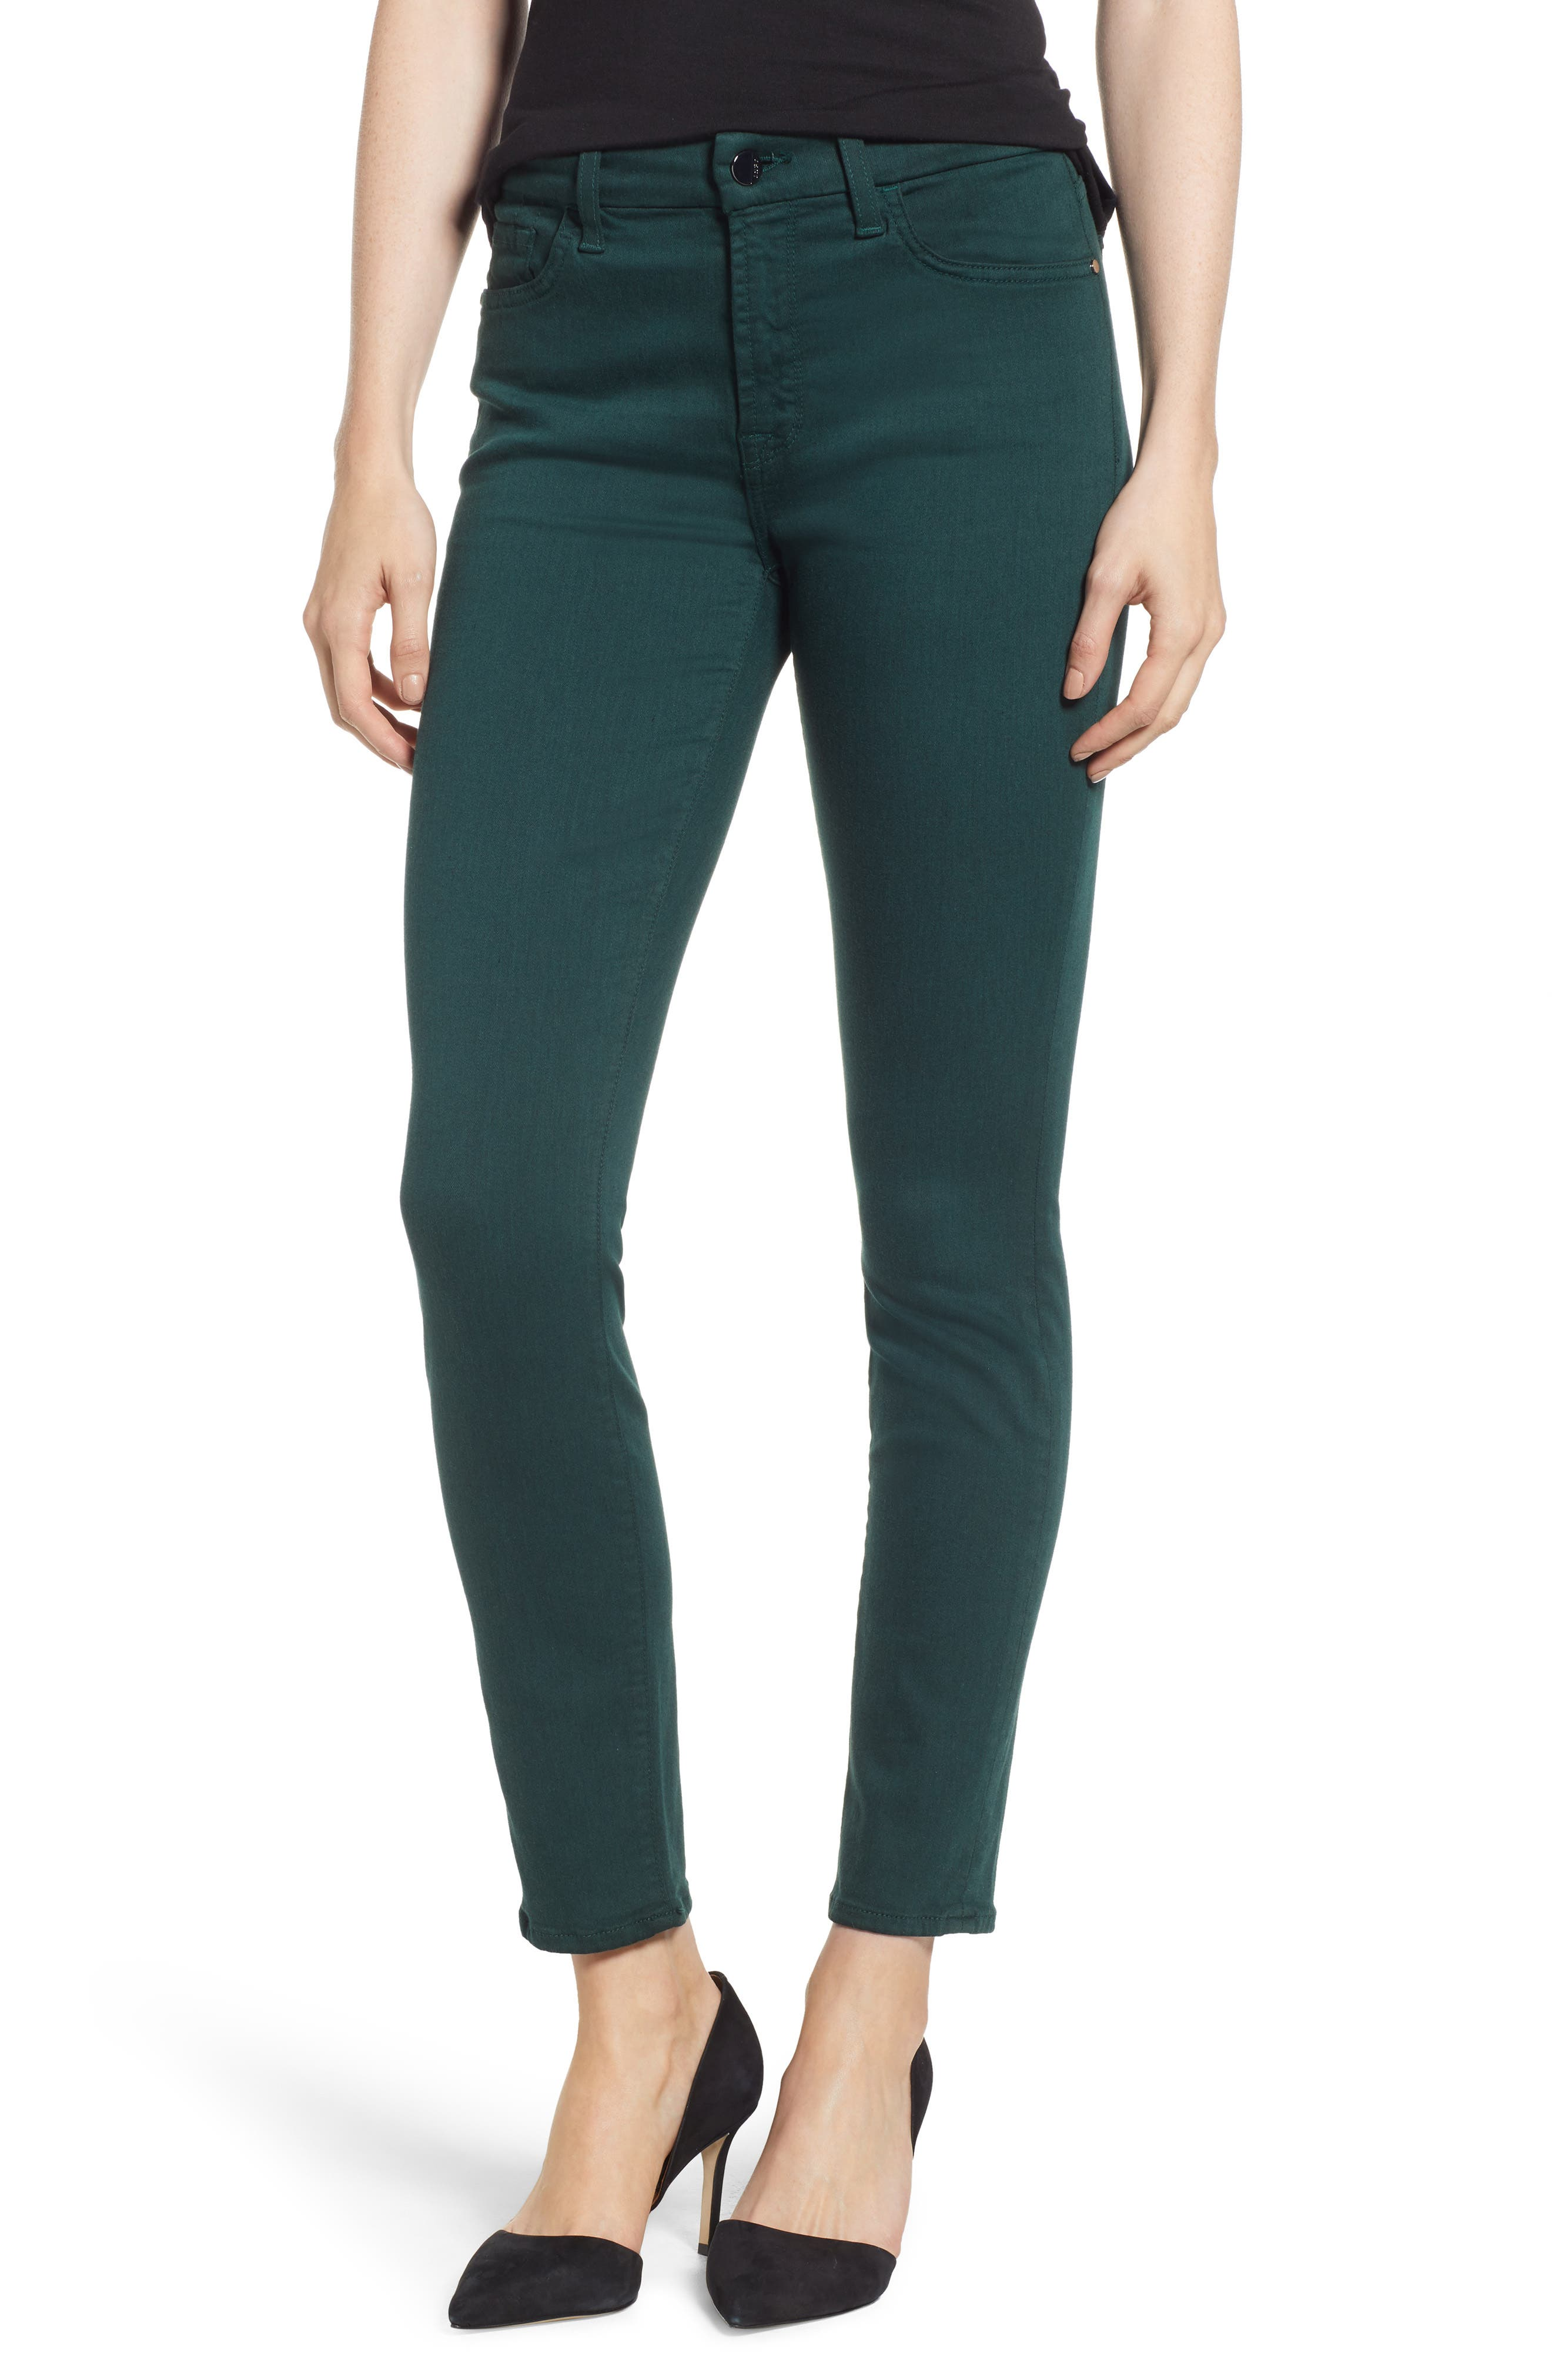 JEN7 BY 7 FOR ALL MANKIND Mid-Rise Skinny Twill Pants W/ Unraveled Hem in Envy Green